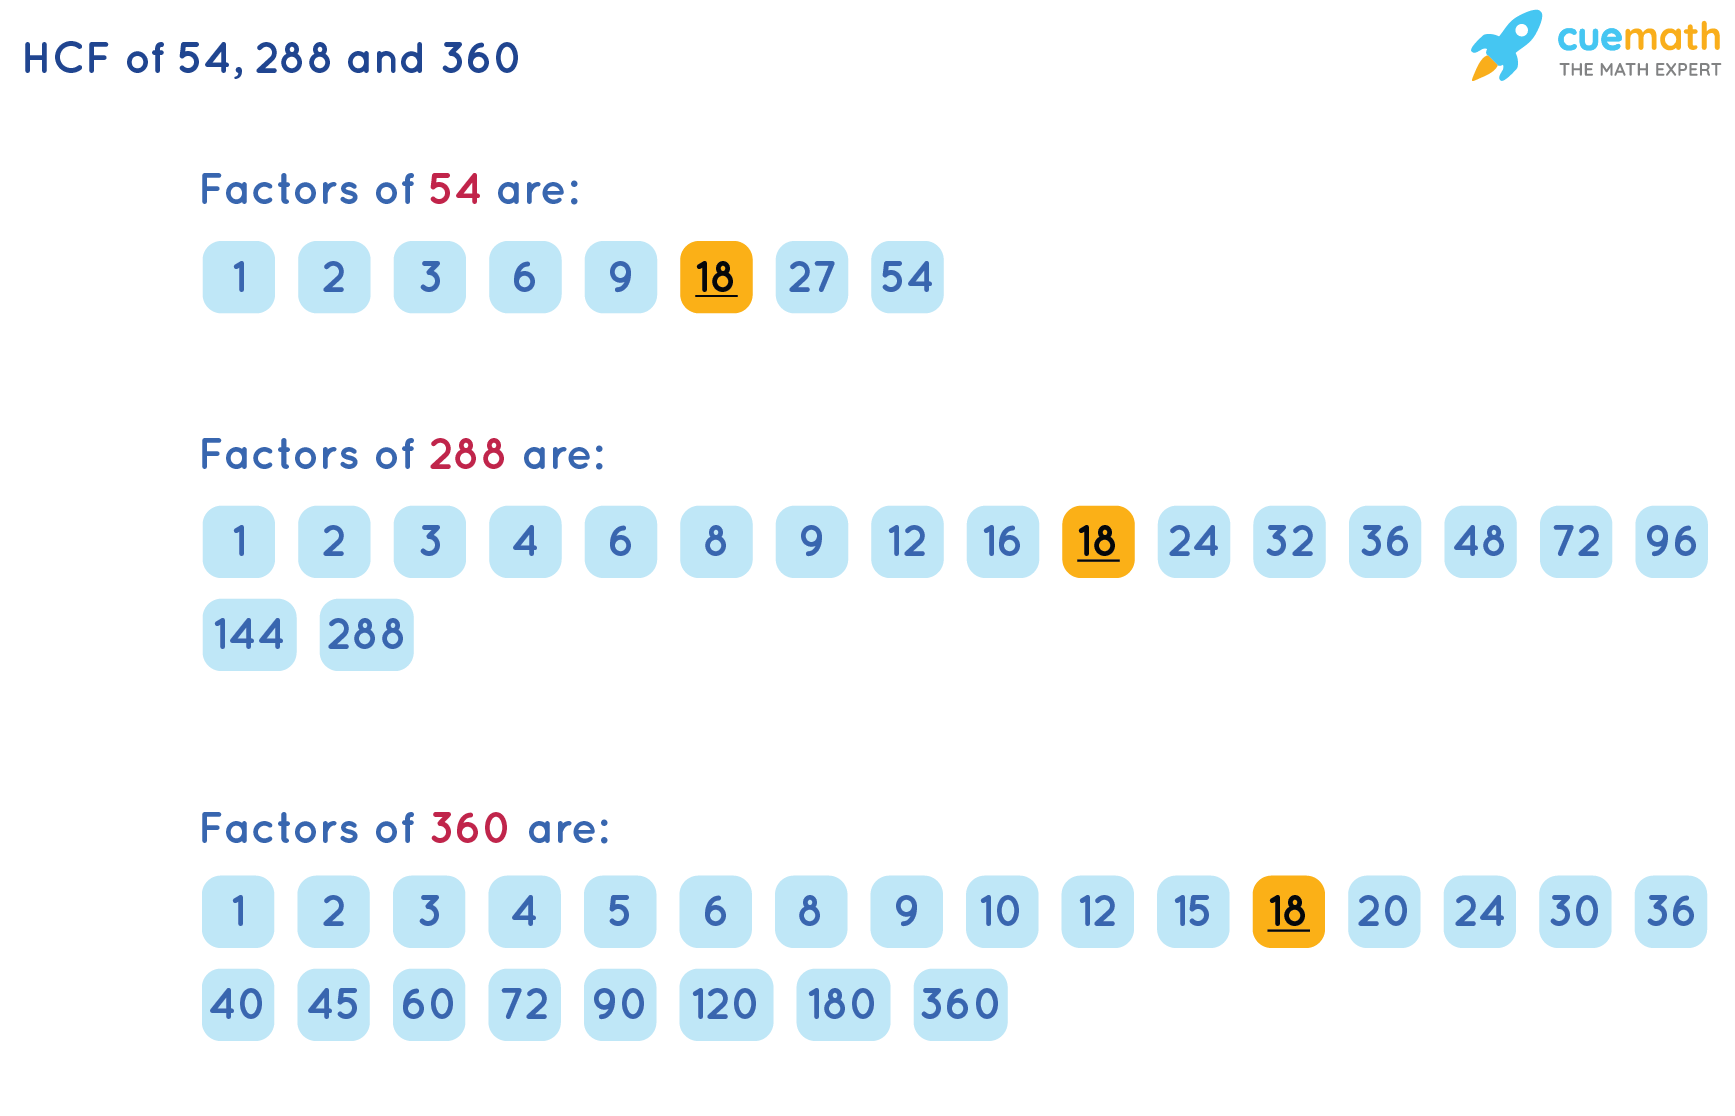 HCF of 54, 288,and 360by Listing the Common Factors